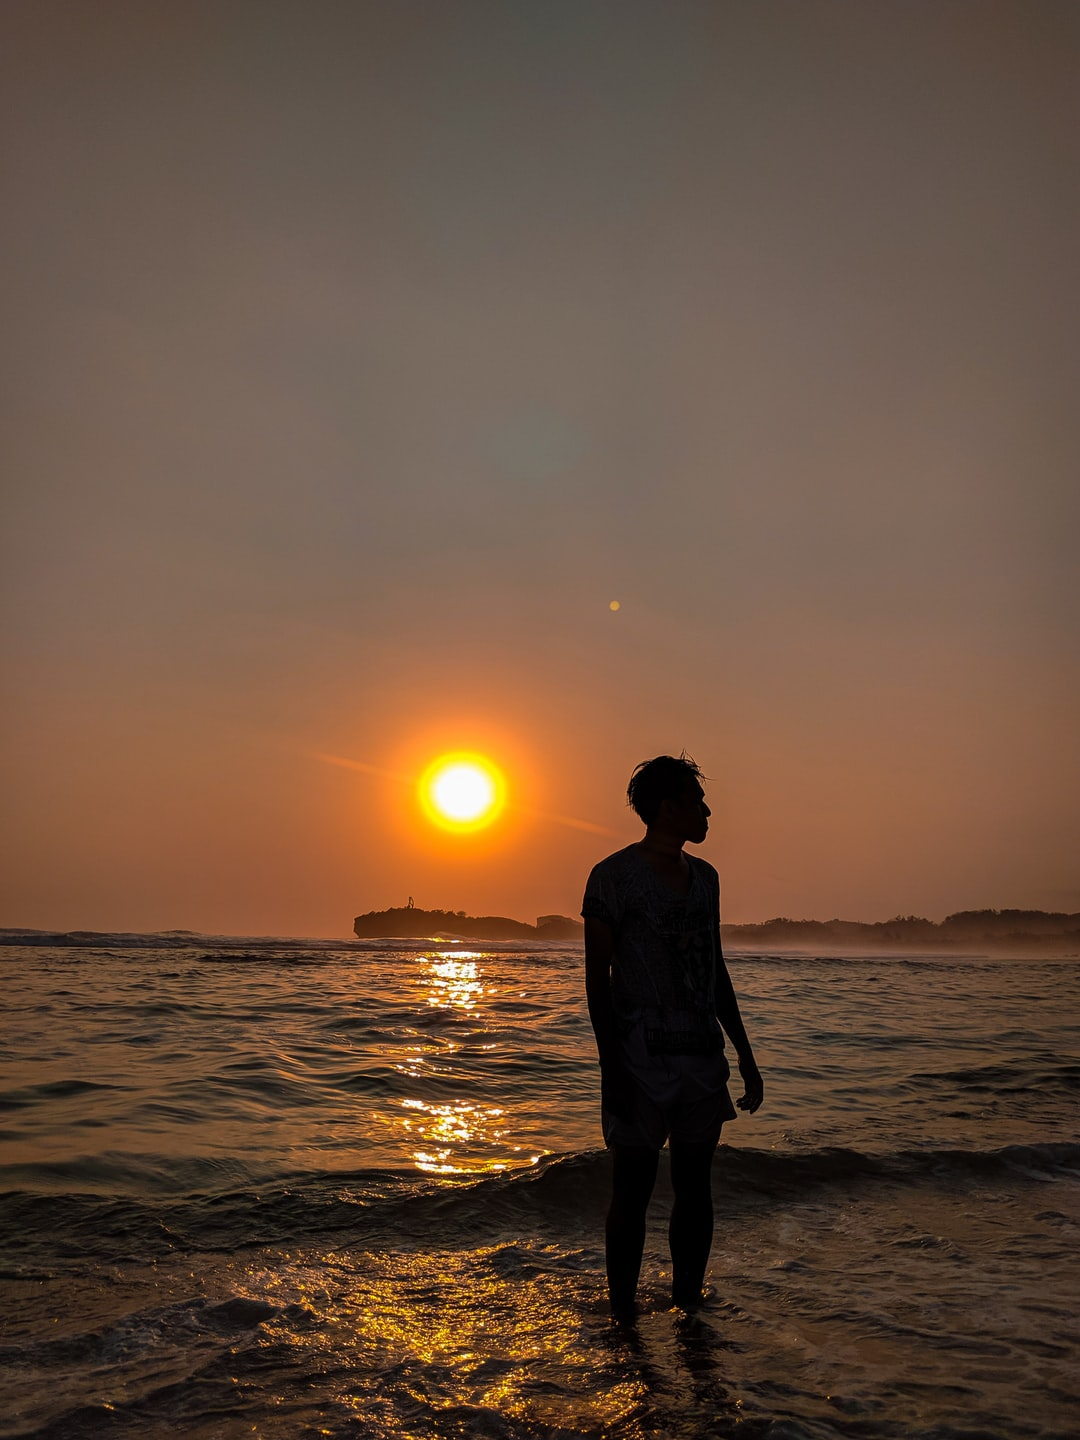 sunset portrait on sadranan beach